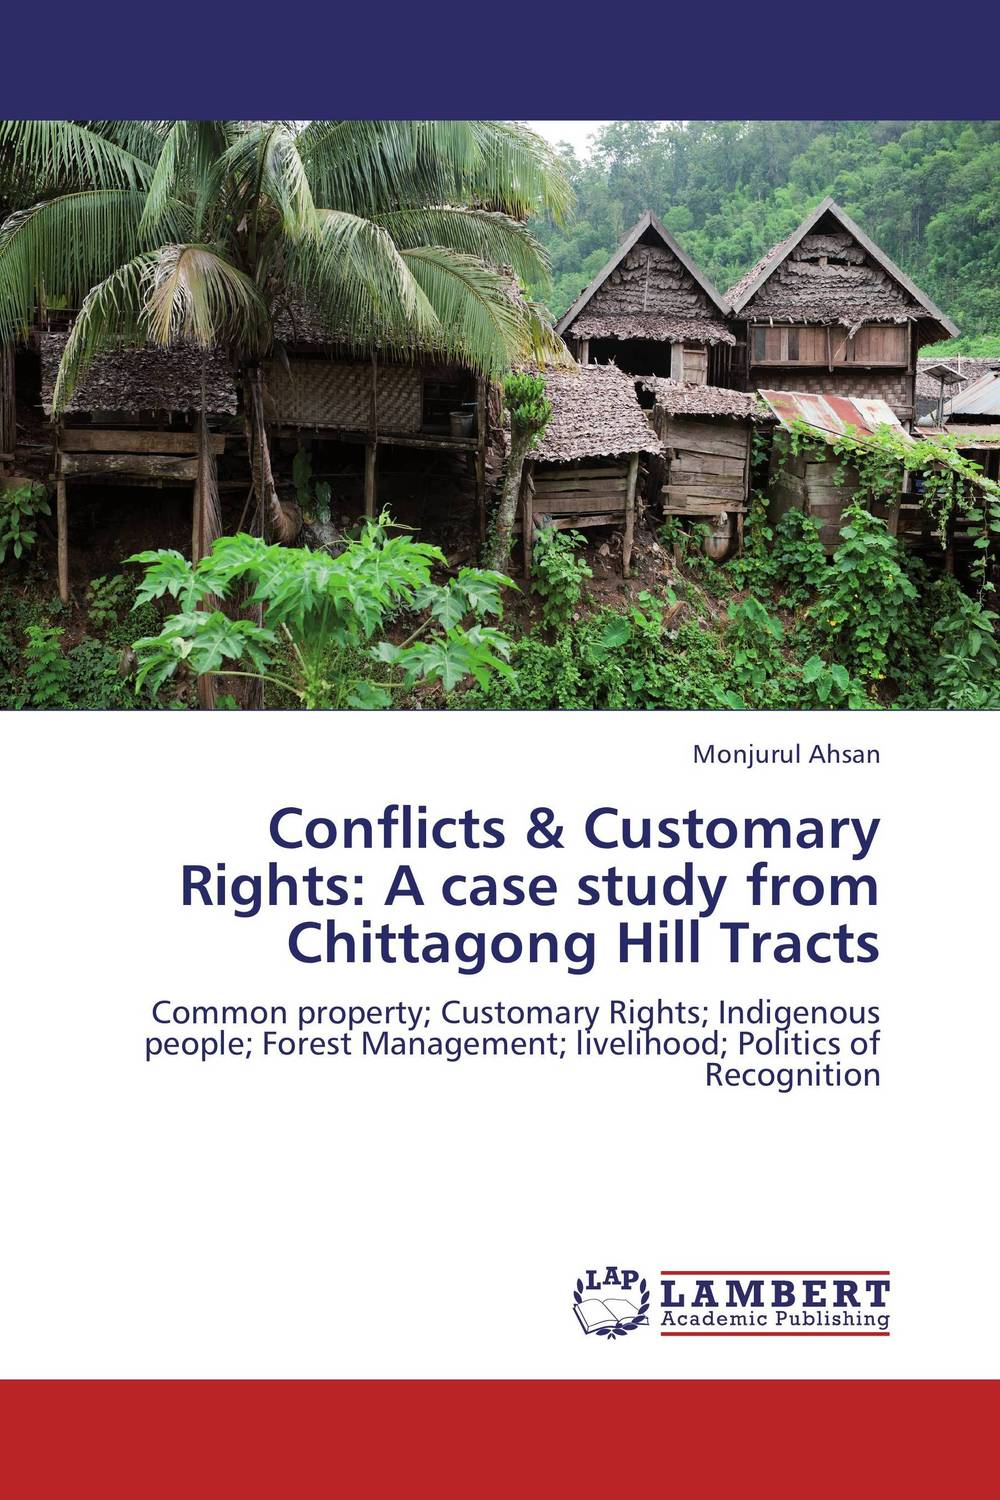 Conflicts & Customary Rights: A case study from Chittagong Hill Tracts conflicts in forest resources usage and management